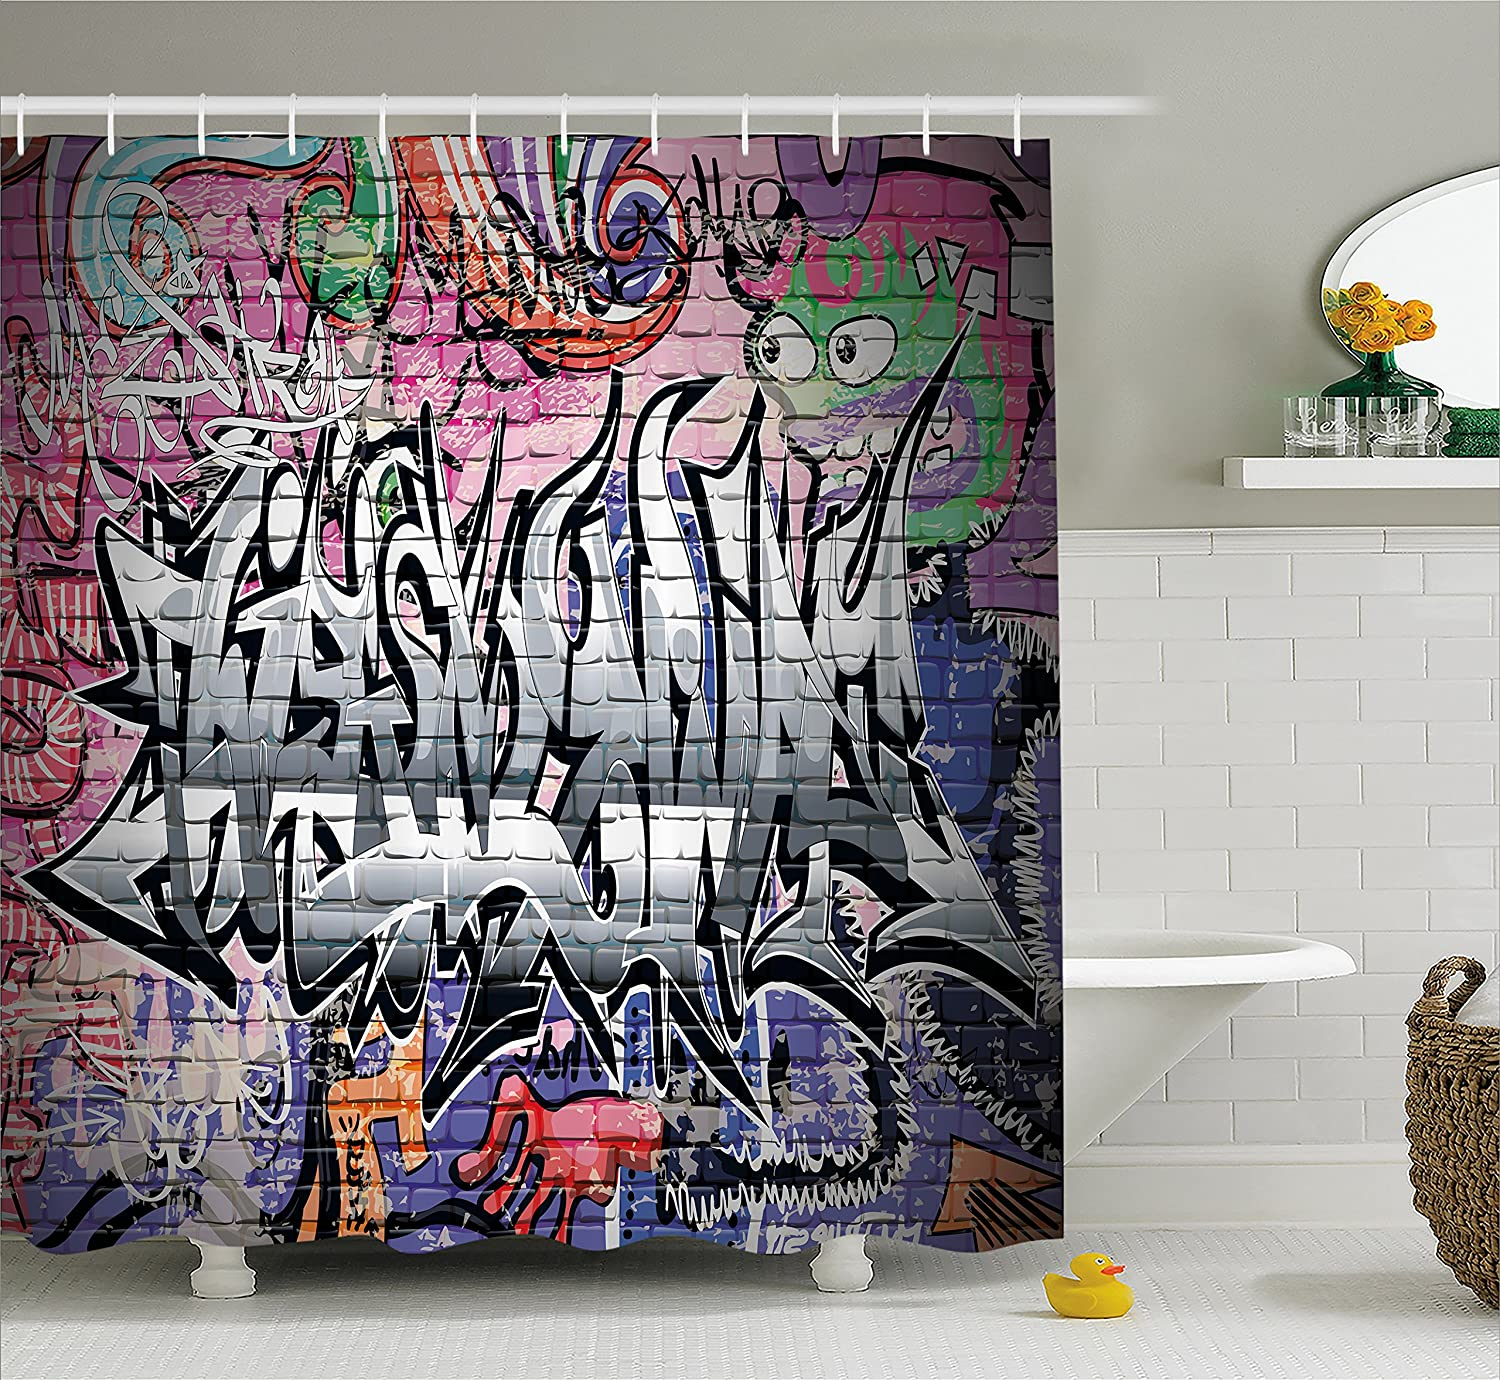 Ambesonne Rustic Home Decor Shower Curtain, Graffiti Grunge Art Wall Several Creepy Underground City Paint, Fabric Bathroom Decor Set with Hooks, 70 Inches, Multi